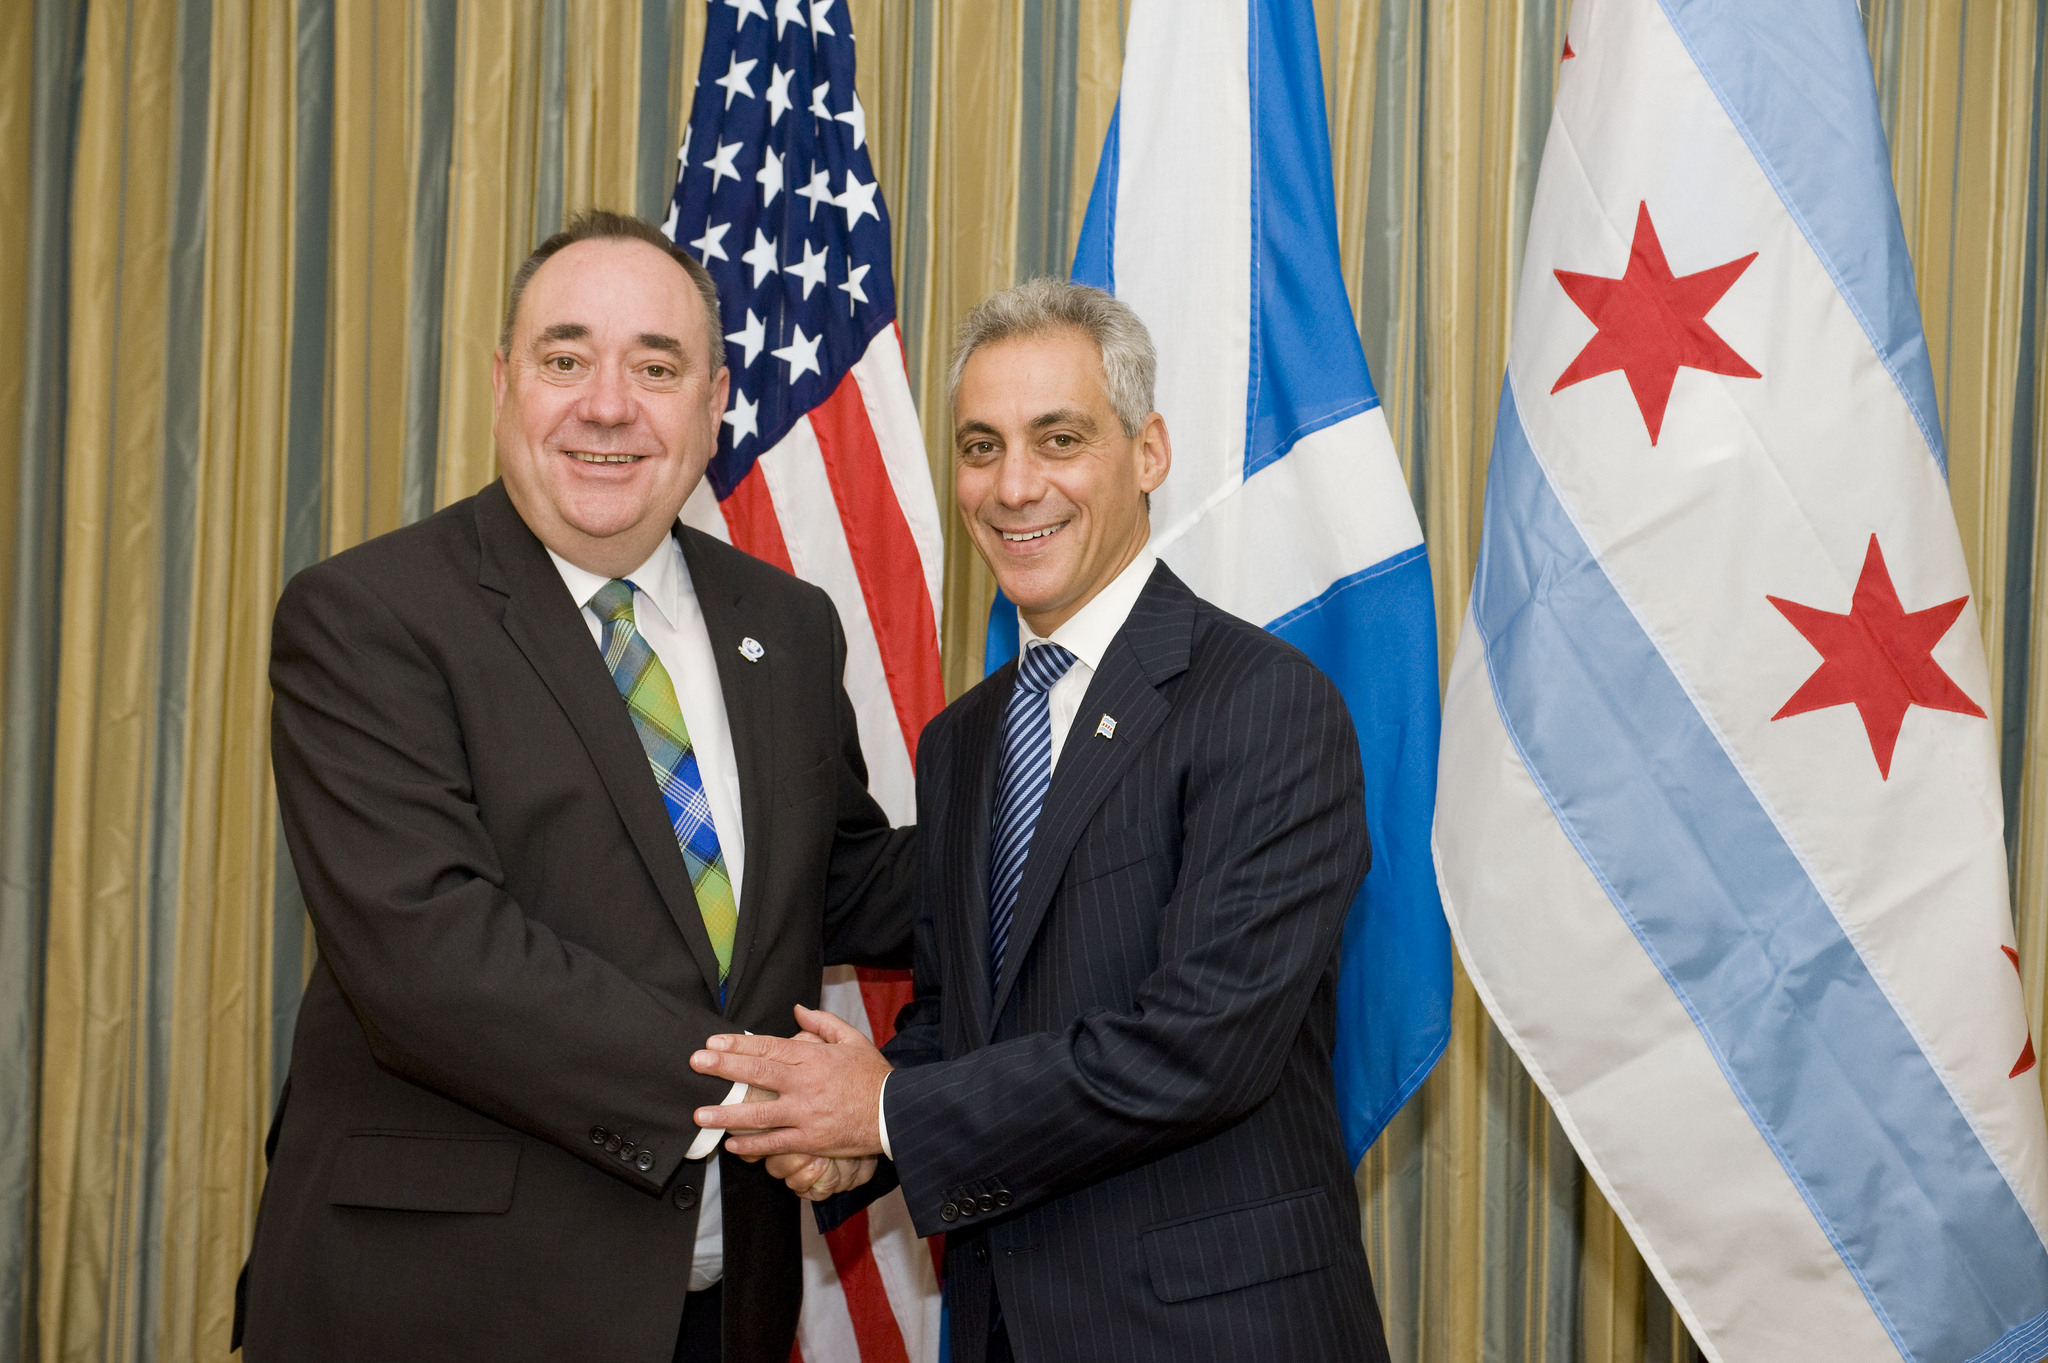 First Minister Salmond and Chicago Mayor Rahm Emanuel